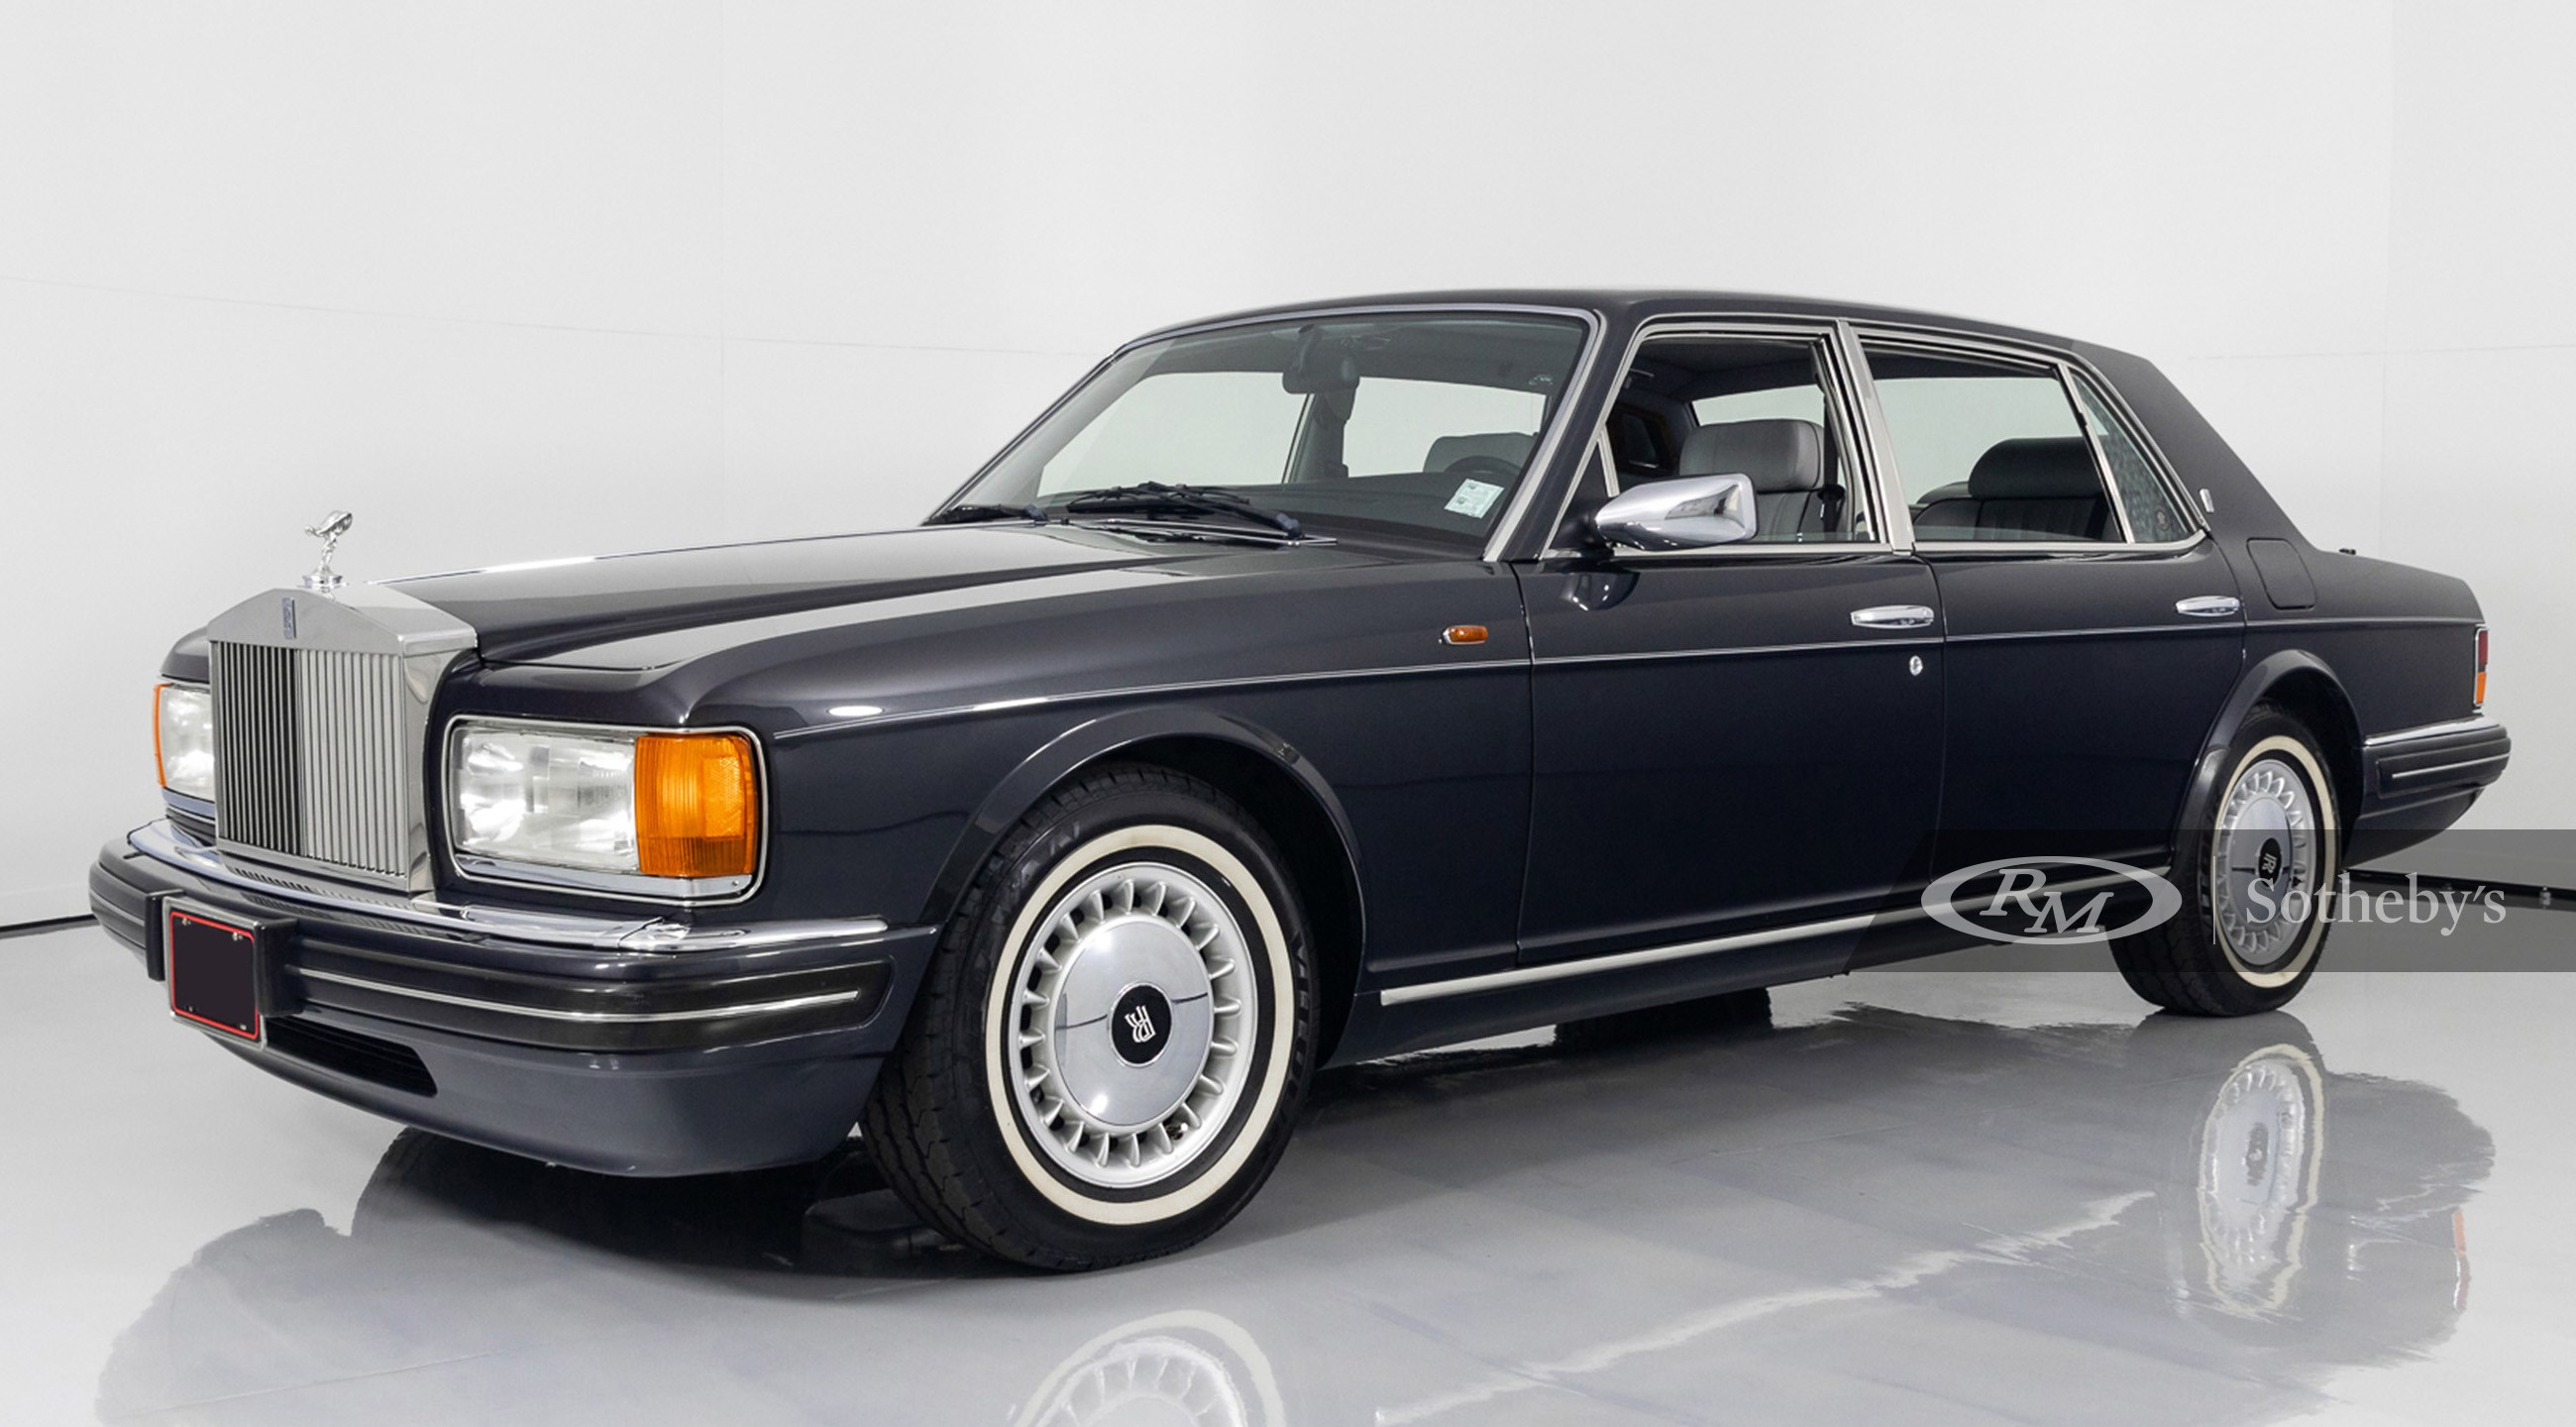 RM Sotheby's, 1997 Rolls-Royce Silver Spur